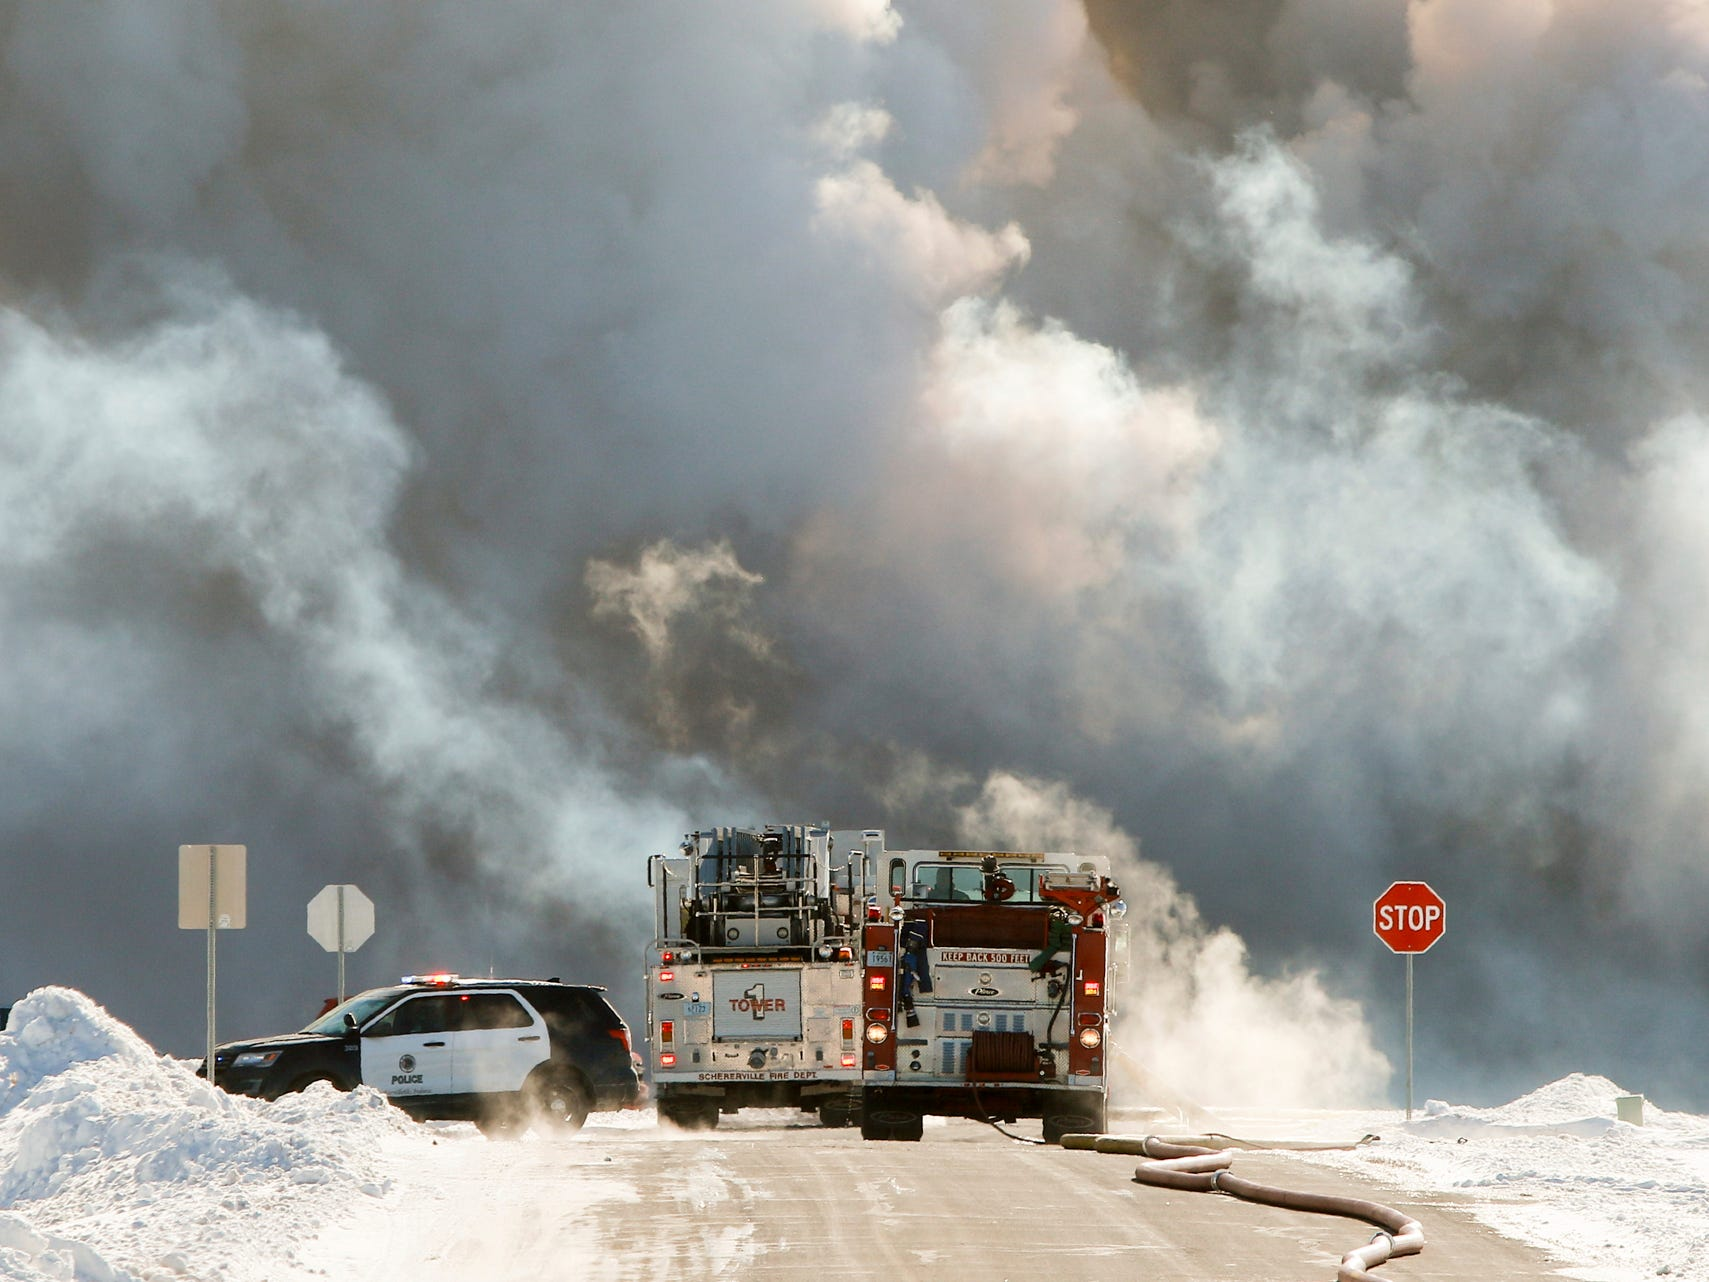 Emergency personnel from several Lake and and Porter County departments responded Jan. 30, 2019 to a warehouse fire in an industrial park in Merrillville, Ind.